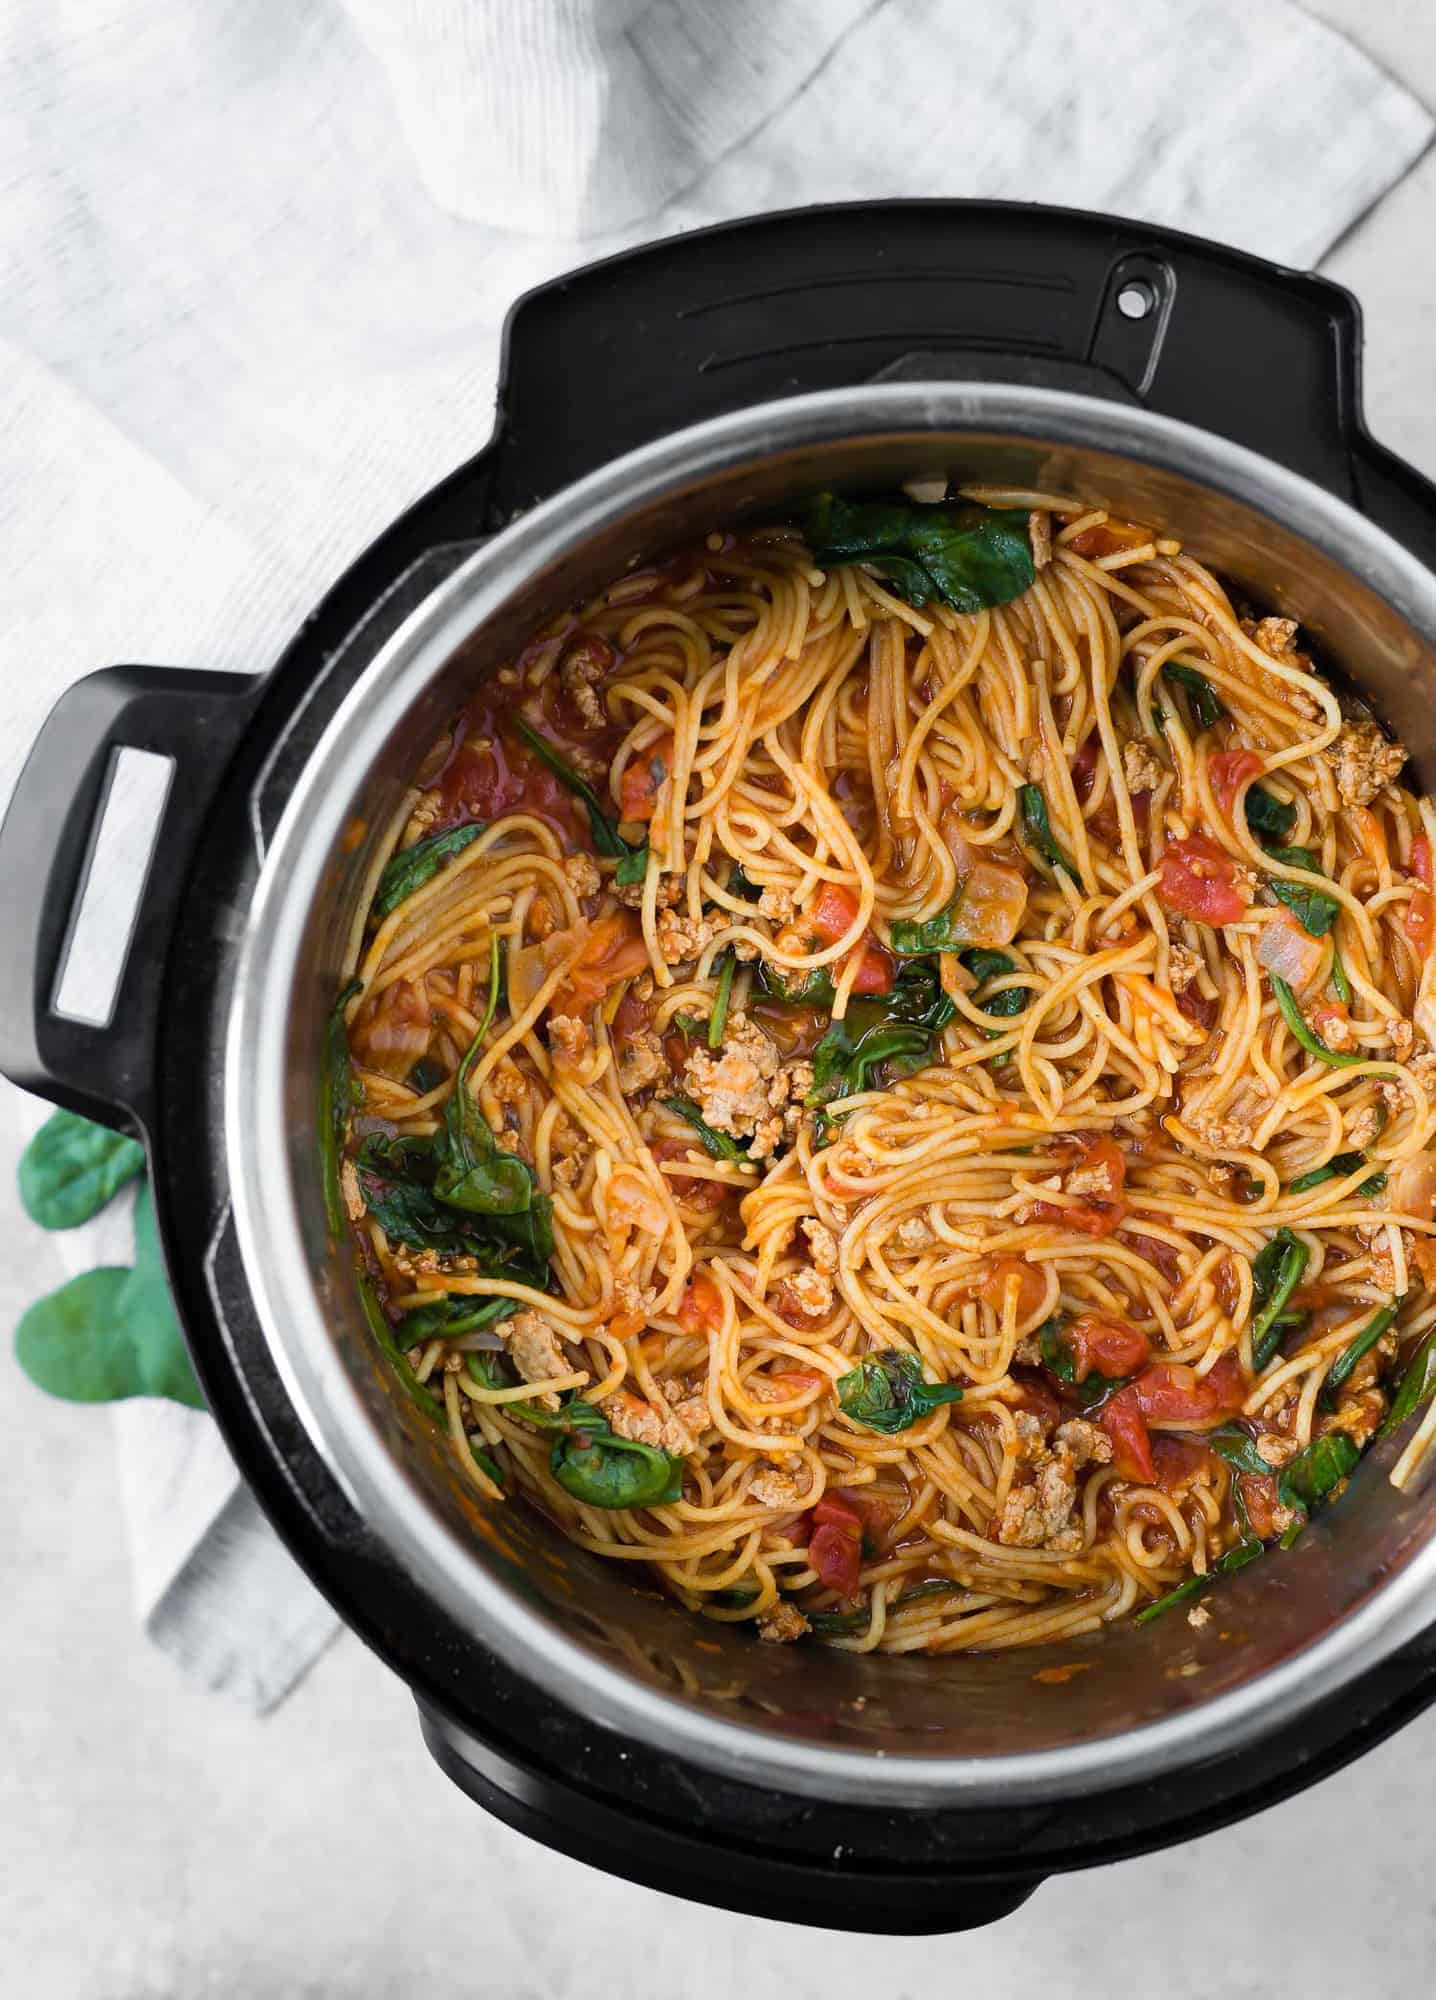 Overhead view of spaghetti in an instant pot, with a meat sauce and spinach.